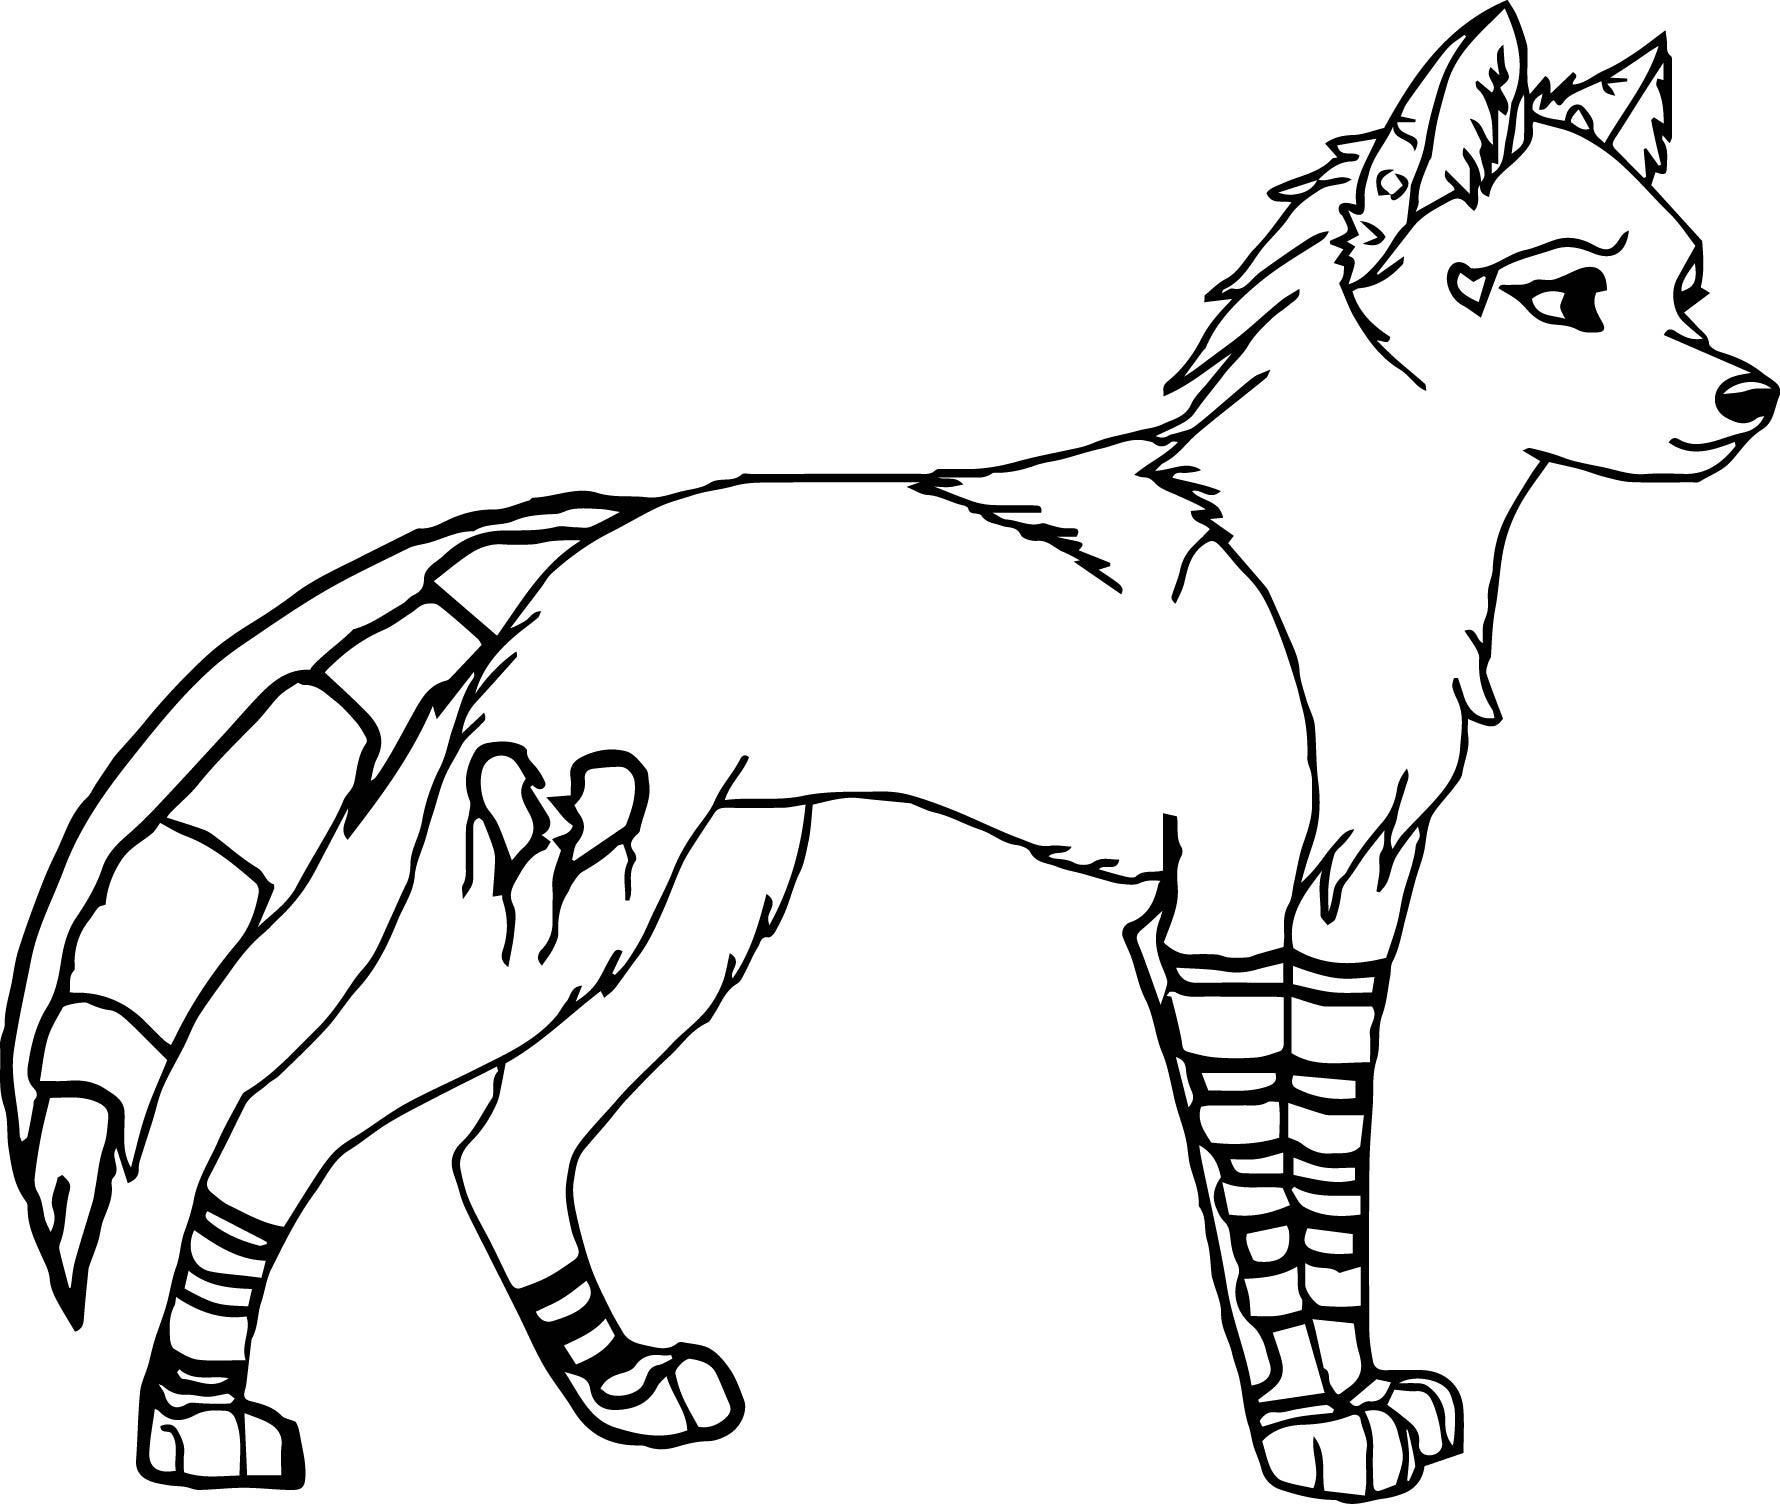 Unlimited Wolf Coloring Pages Printable Arctic Unknown Gallery Of Wolves Coloring Pages Wolf Coloring Pages Free Coloring Pages Collection